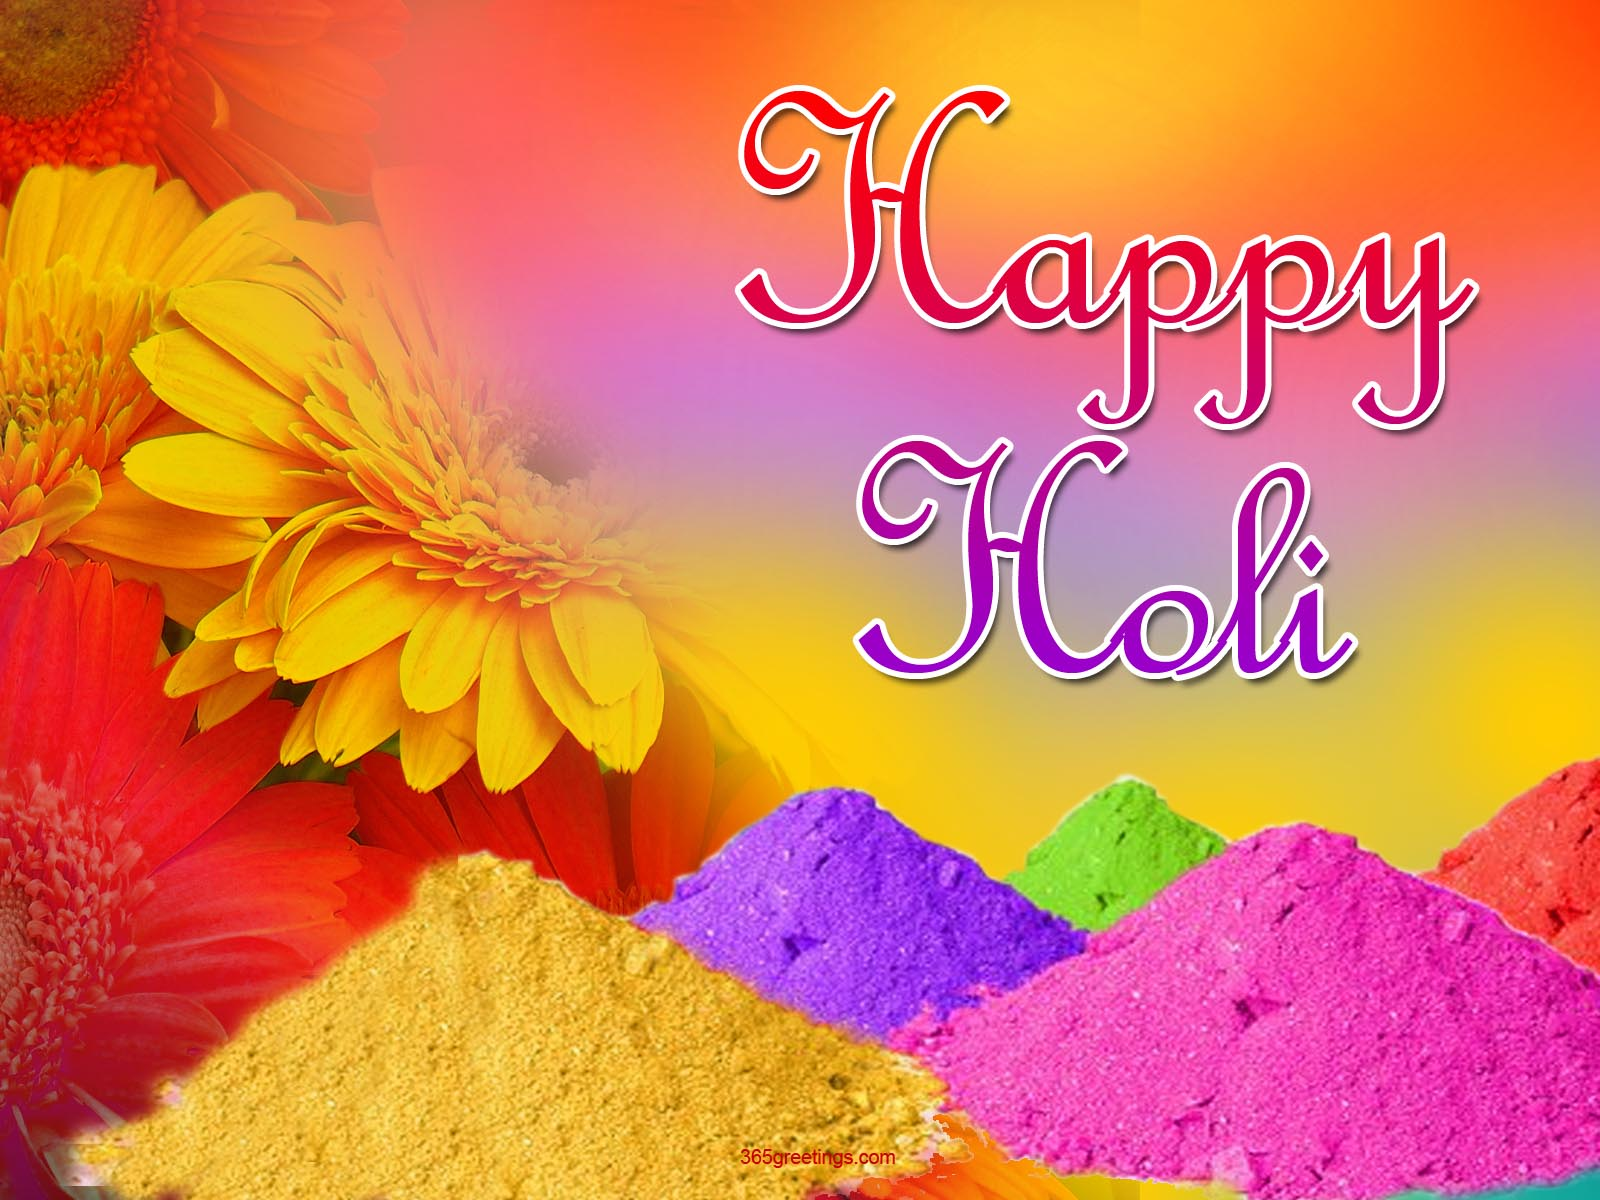 rang tere naam ka happy holi quotes in hindi